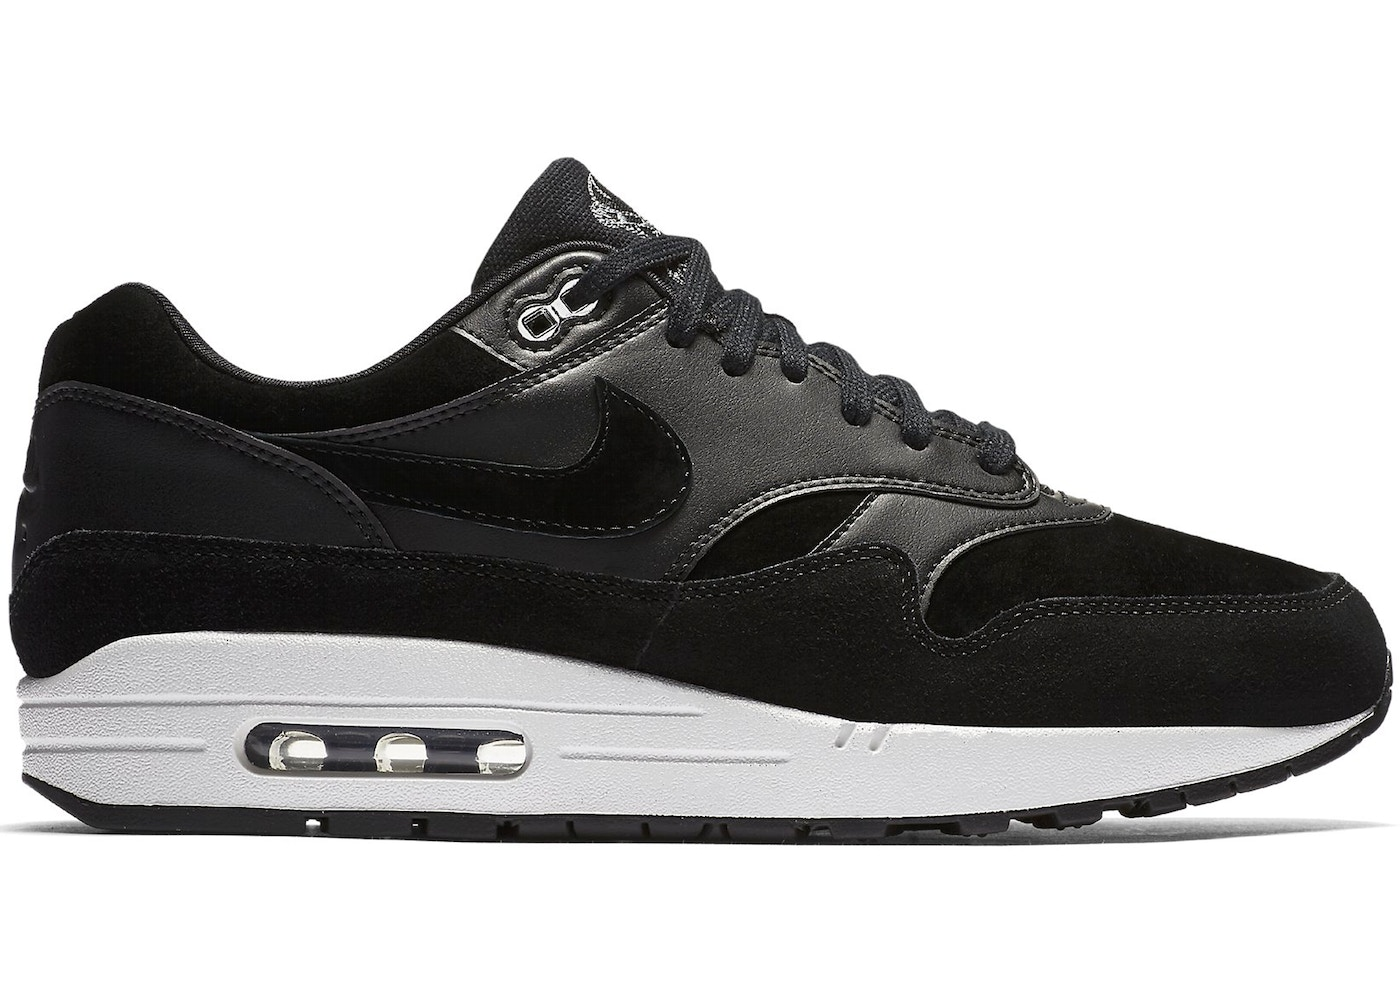 a26847b5d8 Sell. or Ask. Size: 10.5. View All Bids. Air Max 1 Rebel Skulls